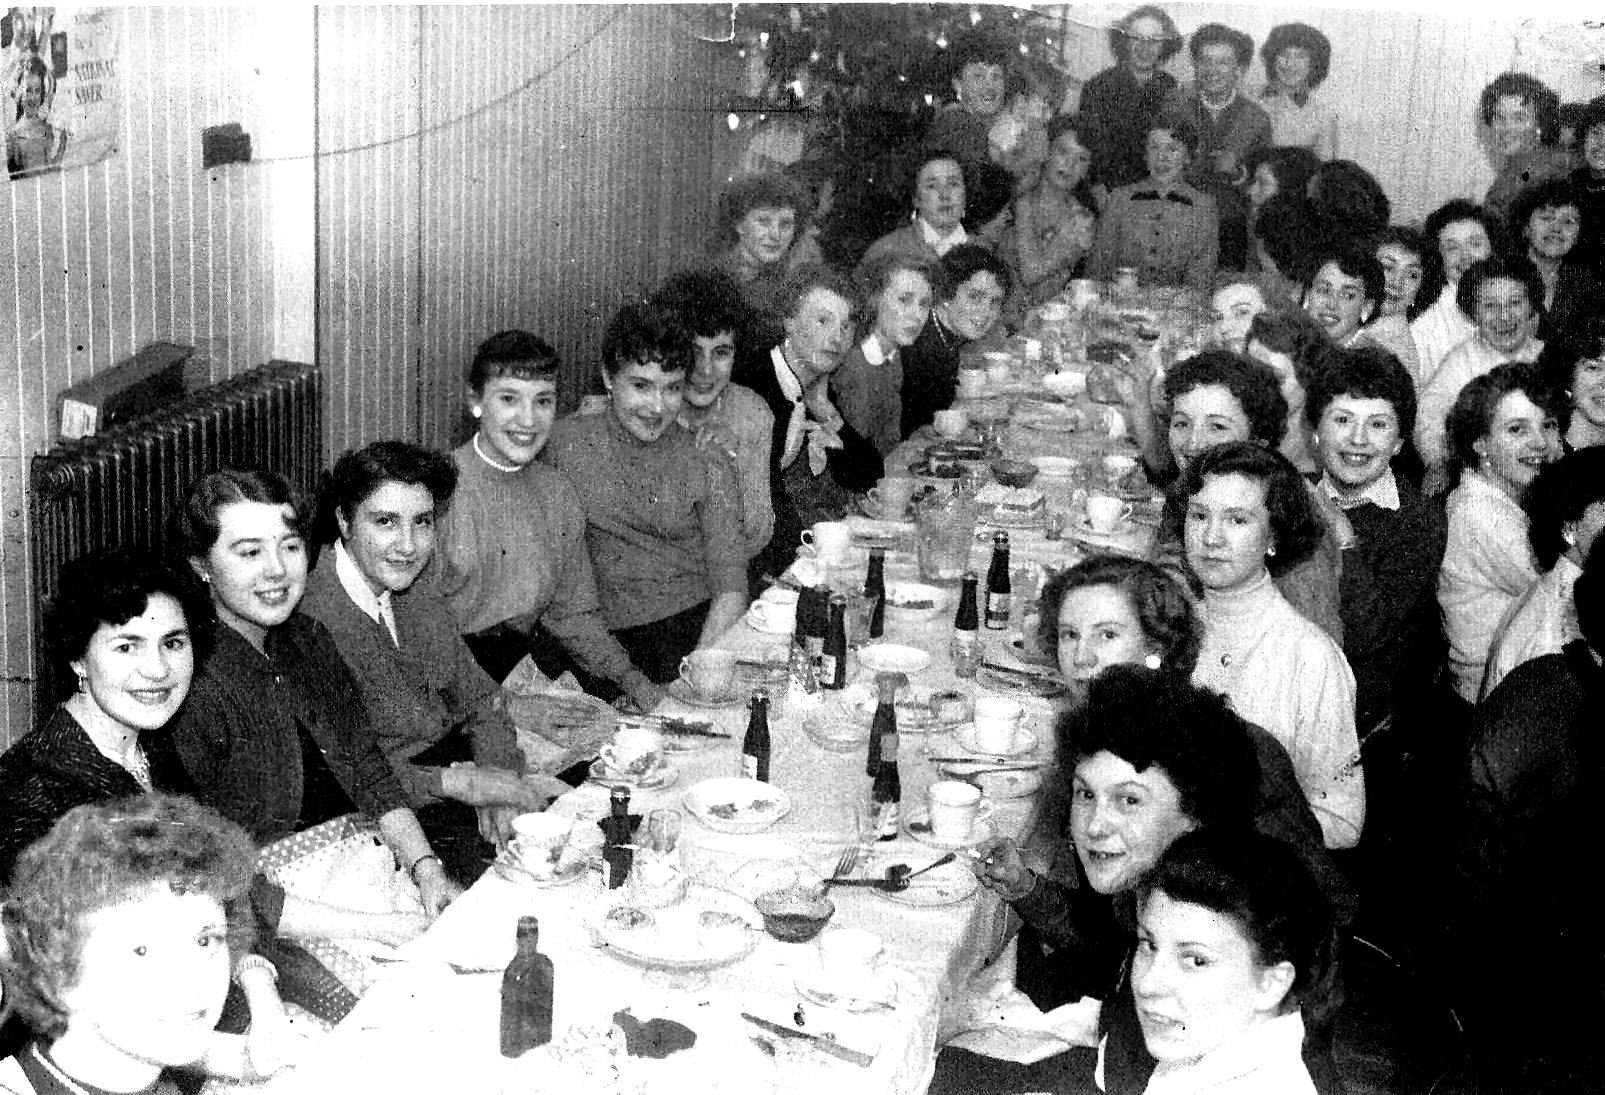 . Pinkhams xmas party 1955.at South Moor.